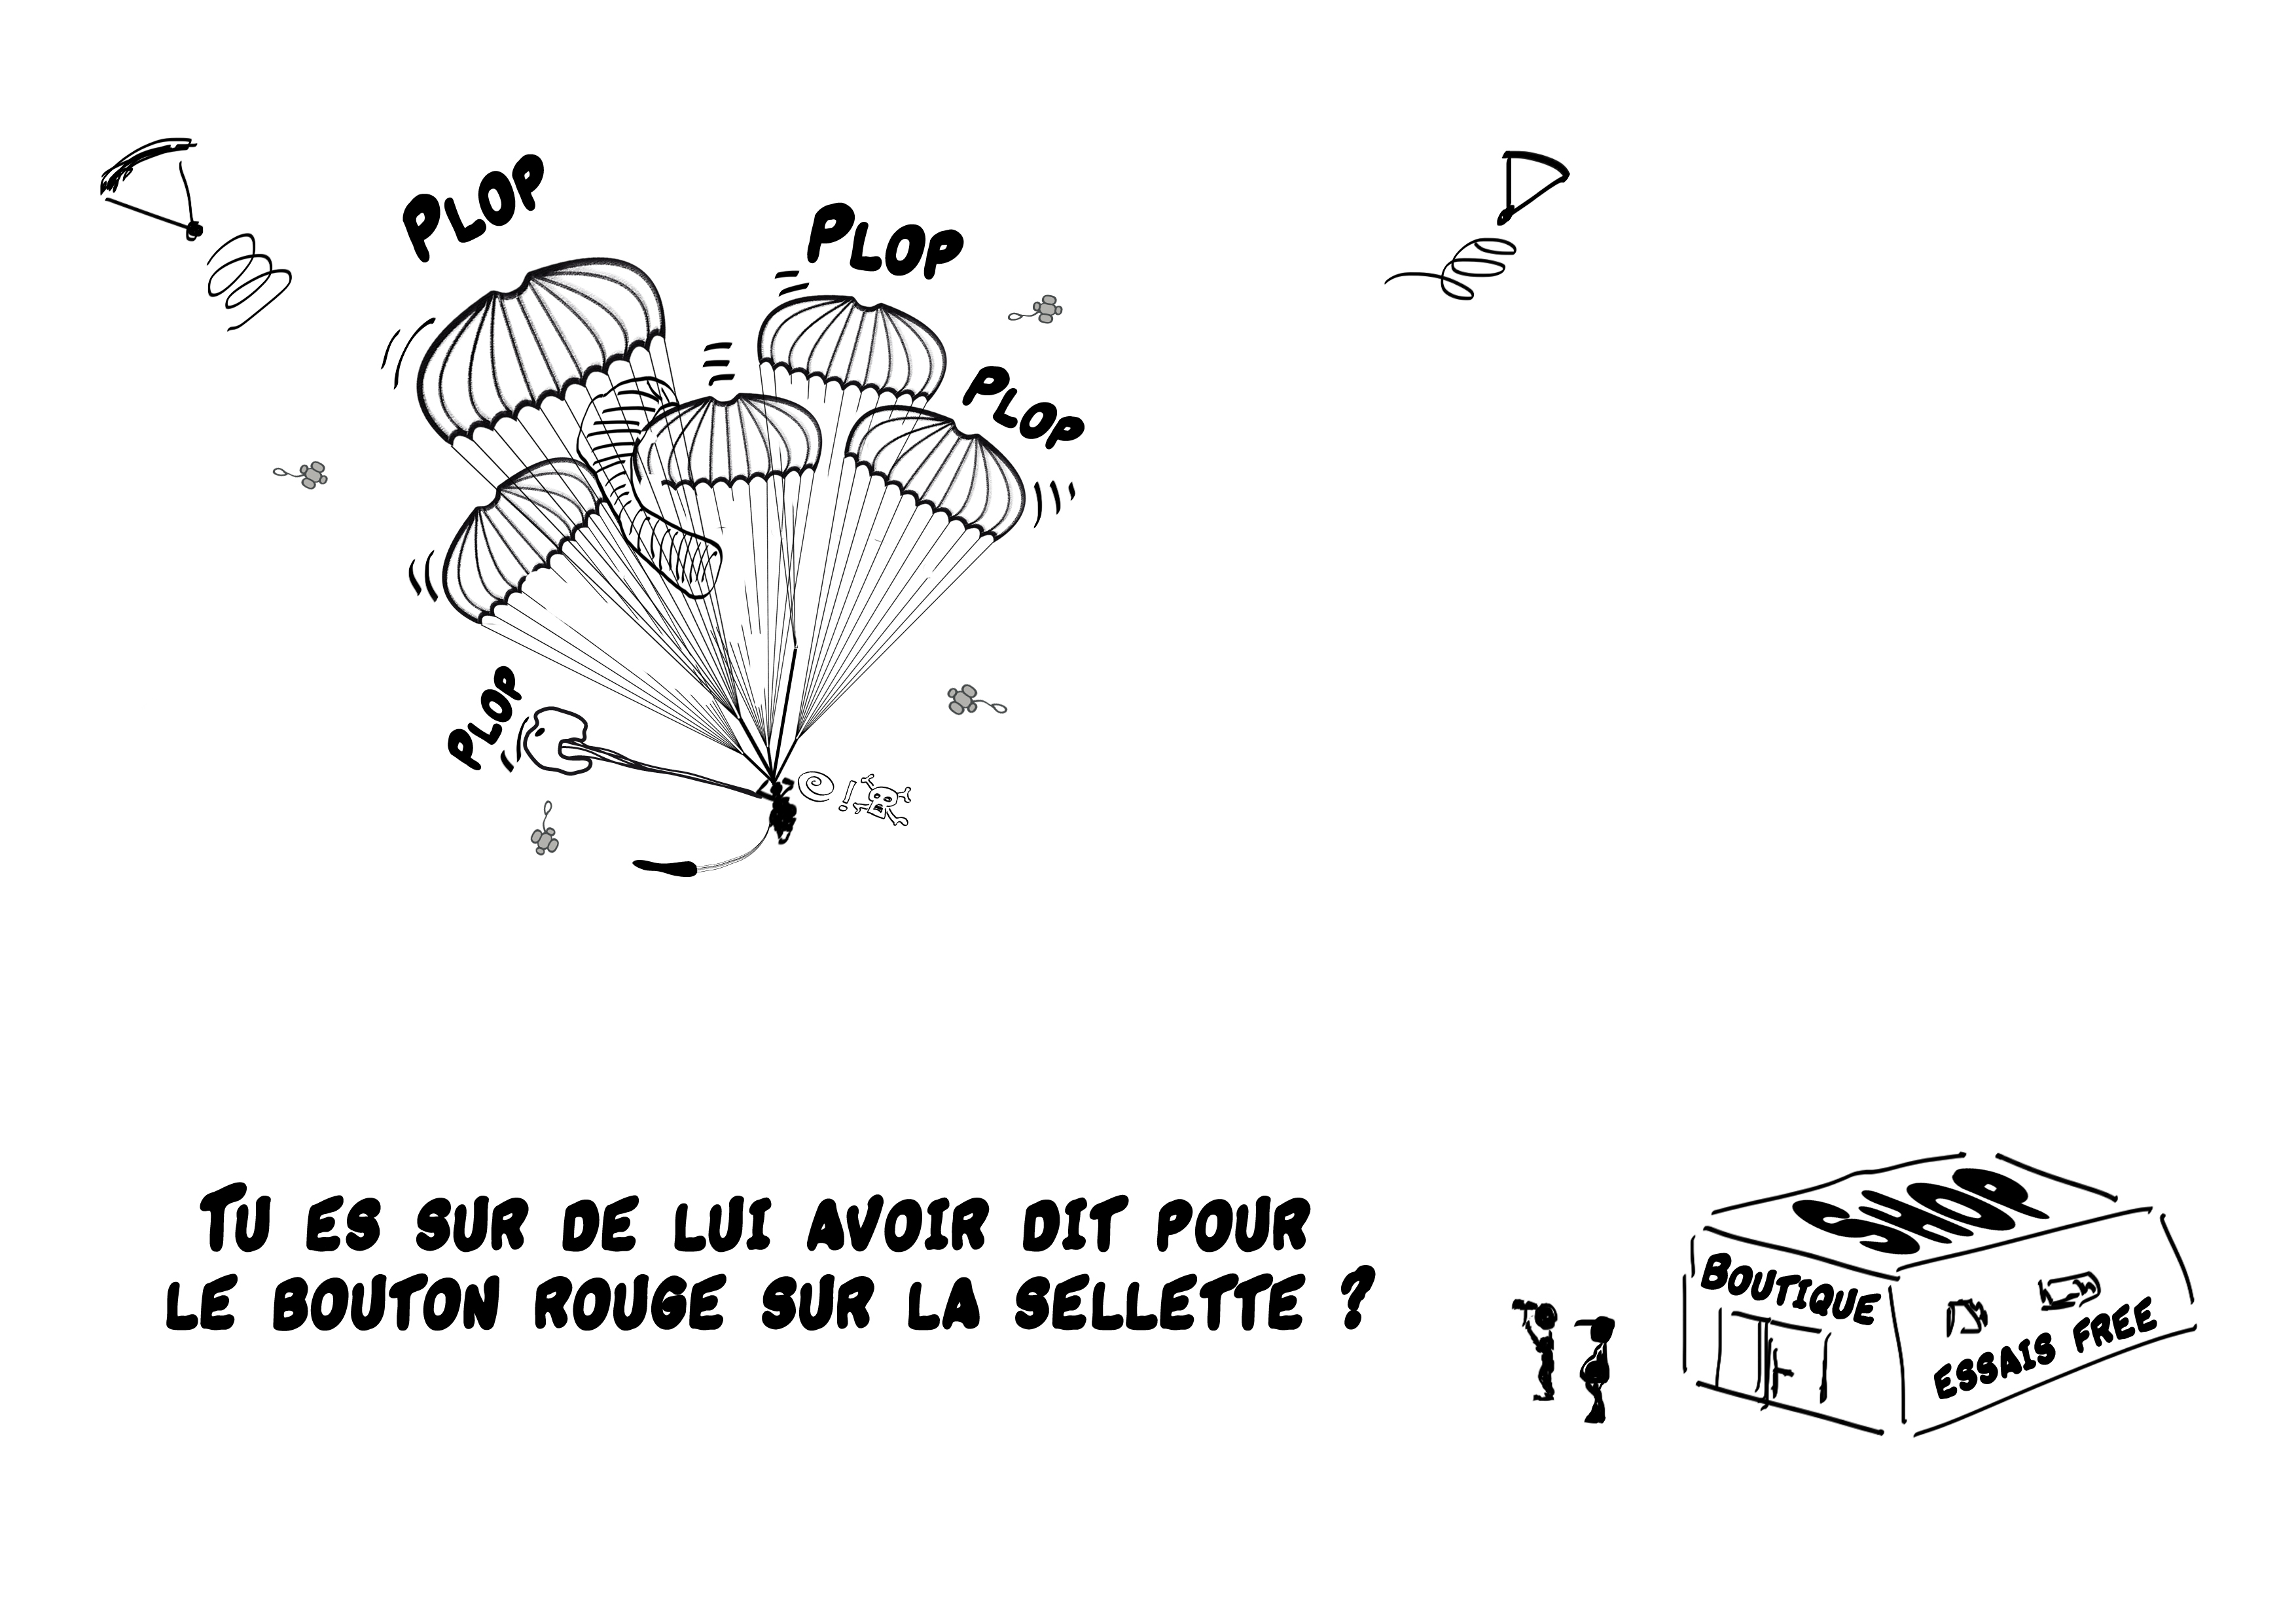 secours-page175.jpg